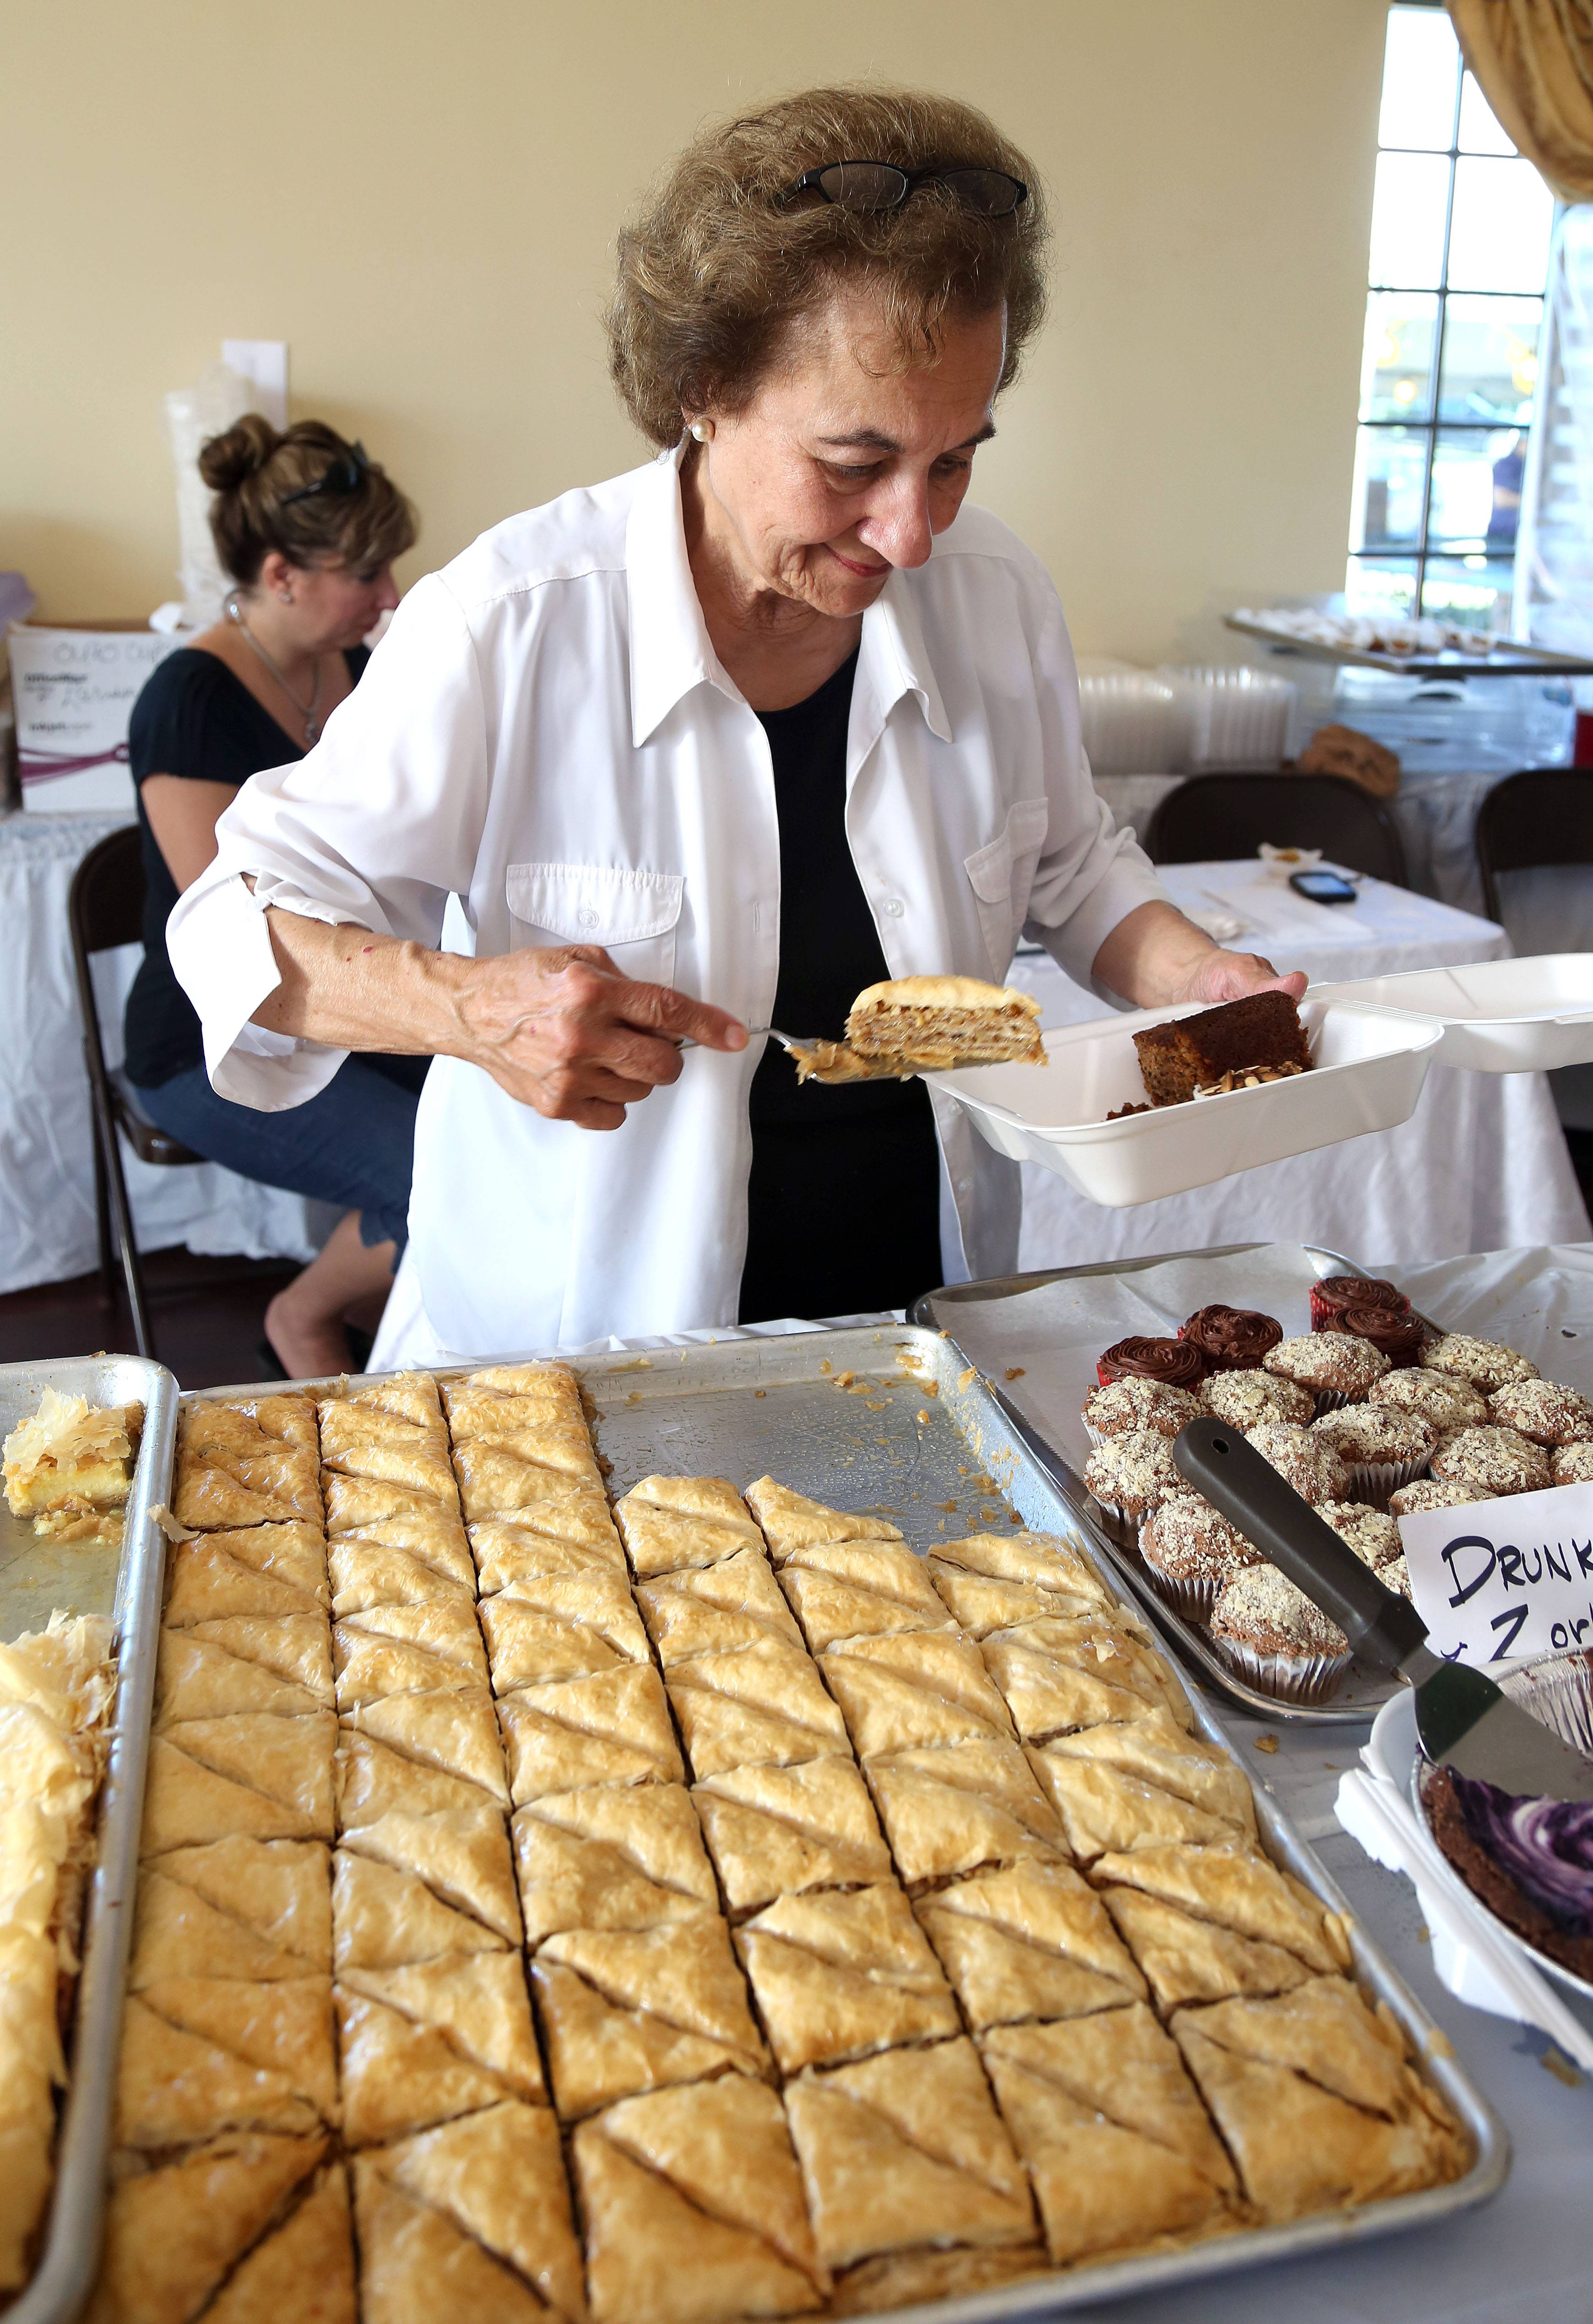 Mary Katris of Waukegan serves up some baklava during last year's Greek Fest at St. Demetrios.